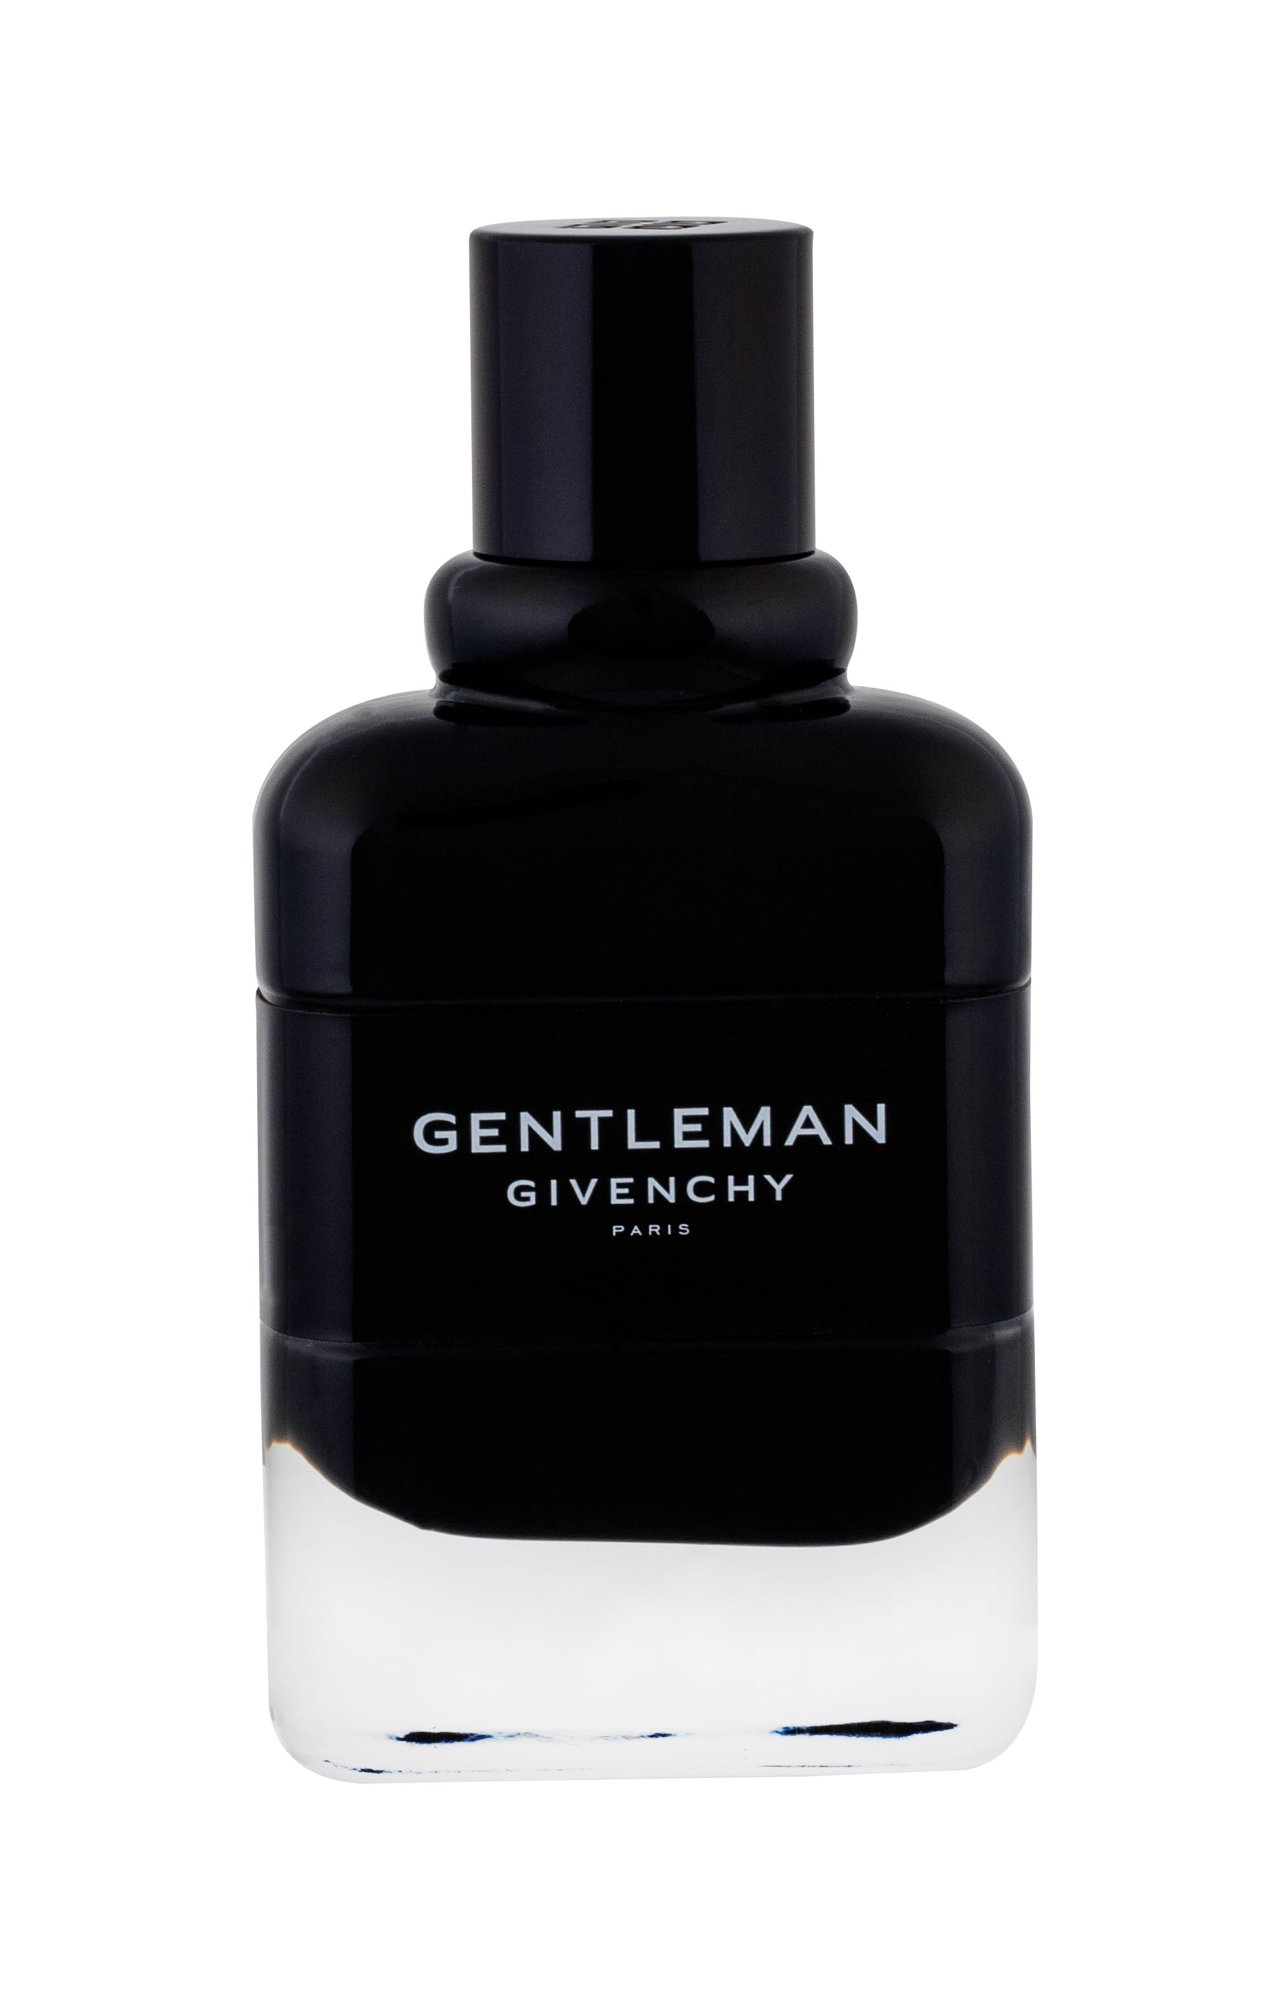 Givenchy Gentleman Eau de Parfum 50ml